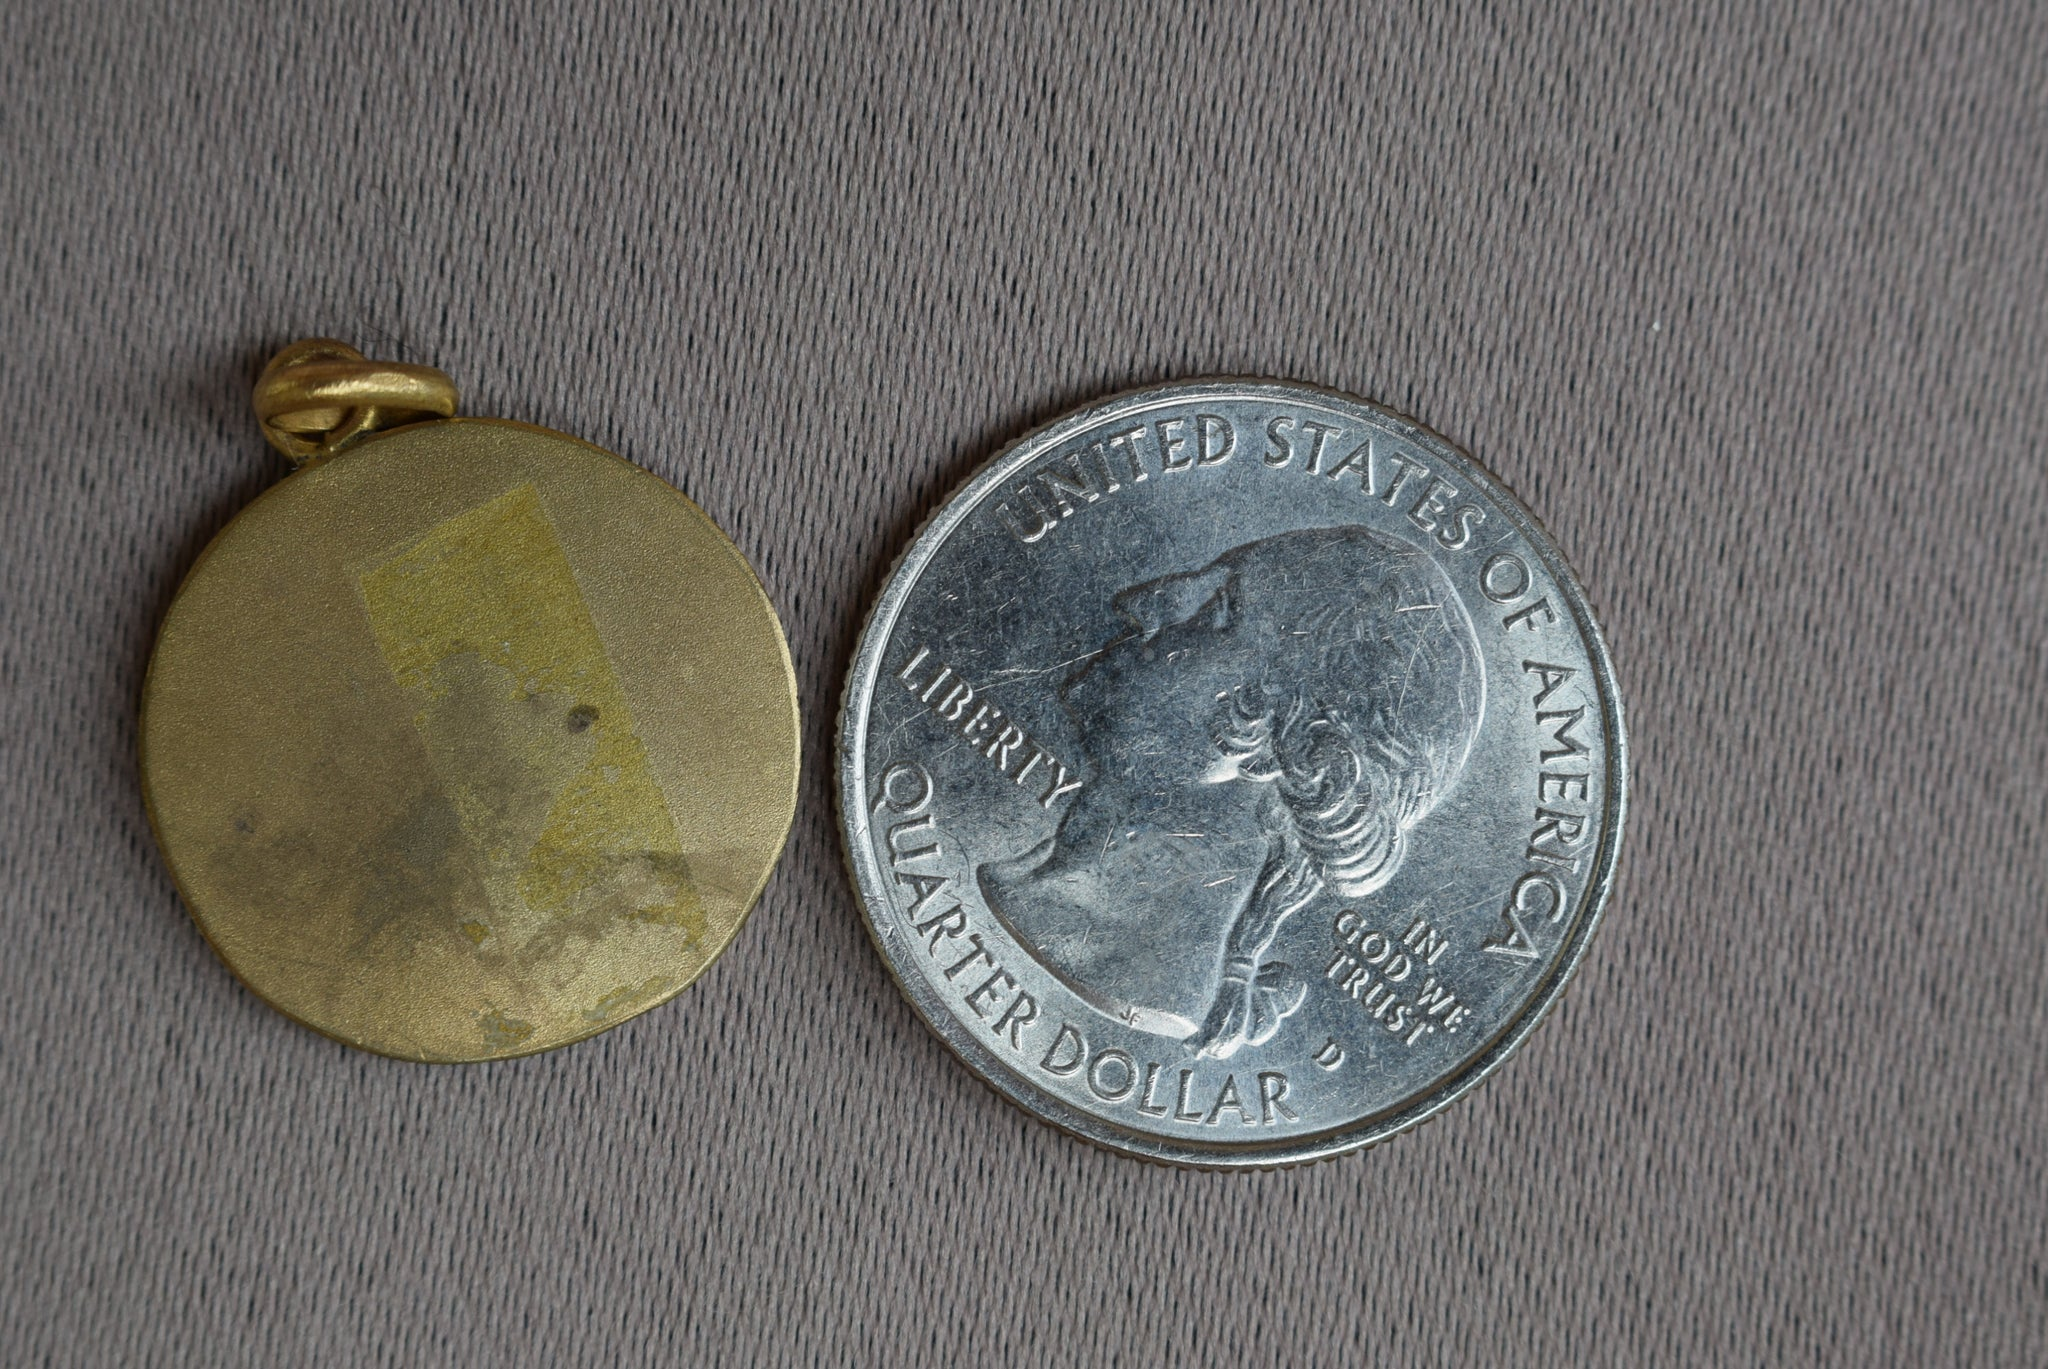 St Veronica Medal by Ph Roch - Charmantiques